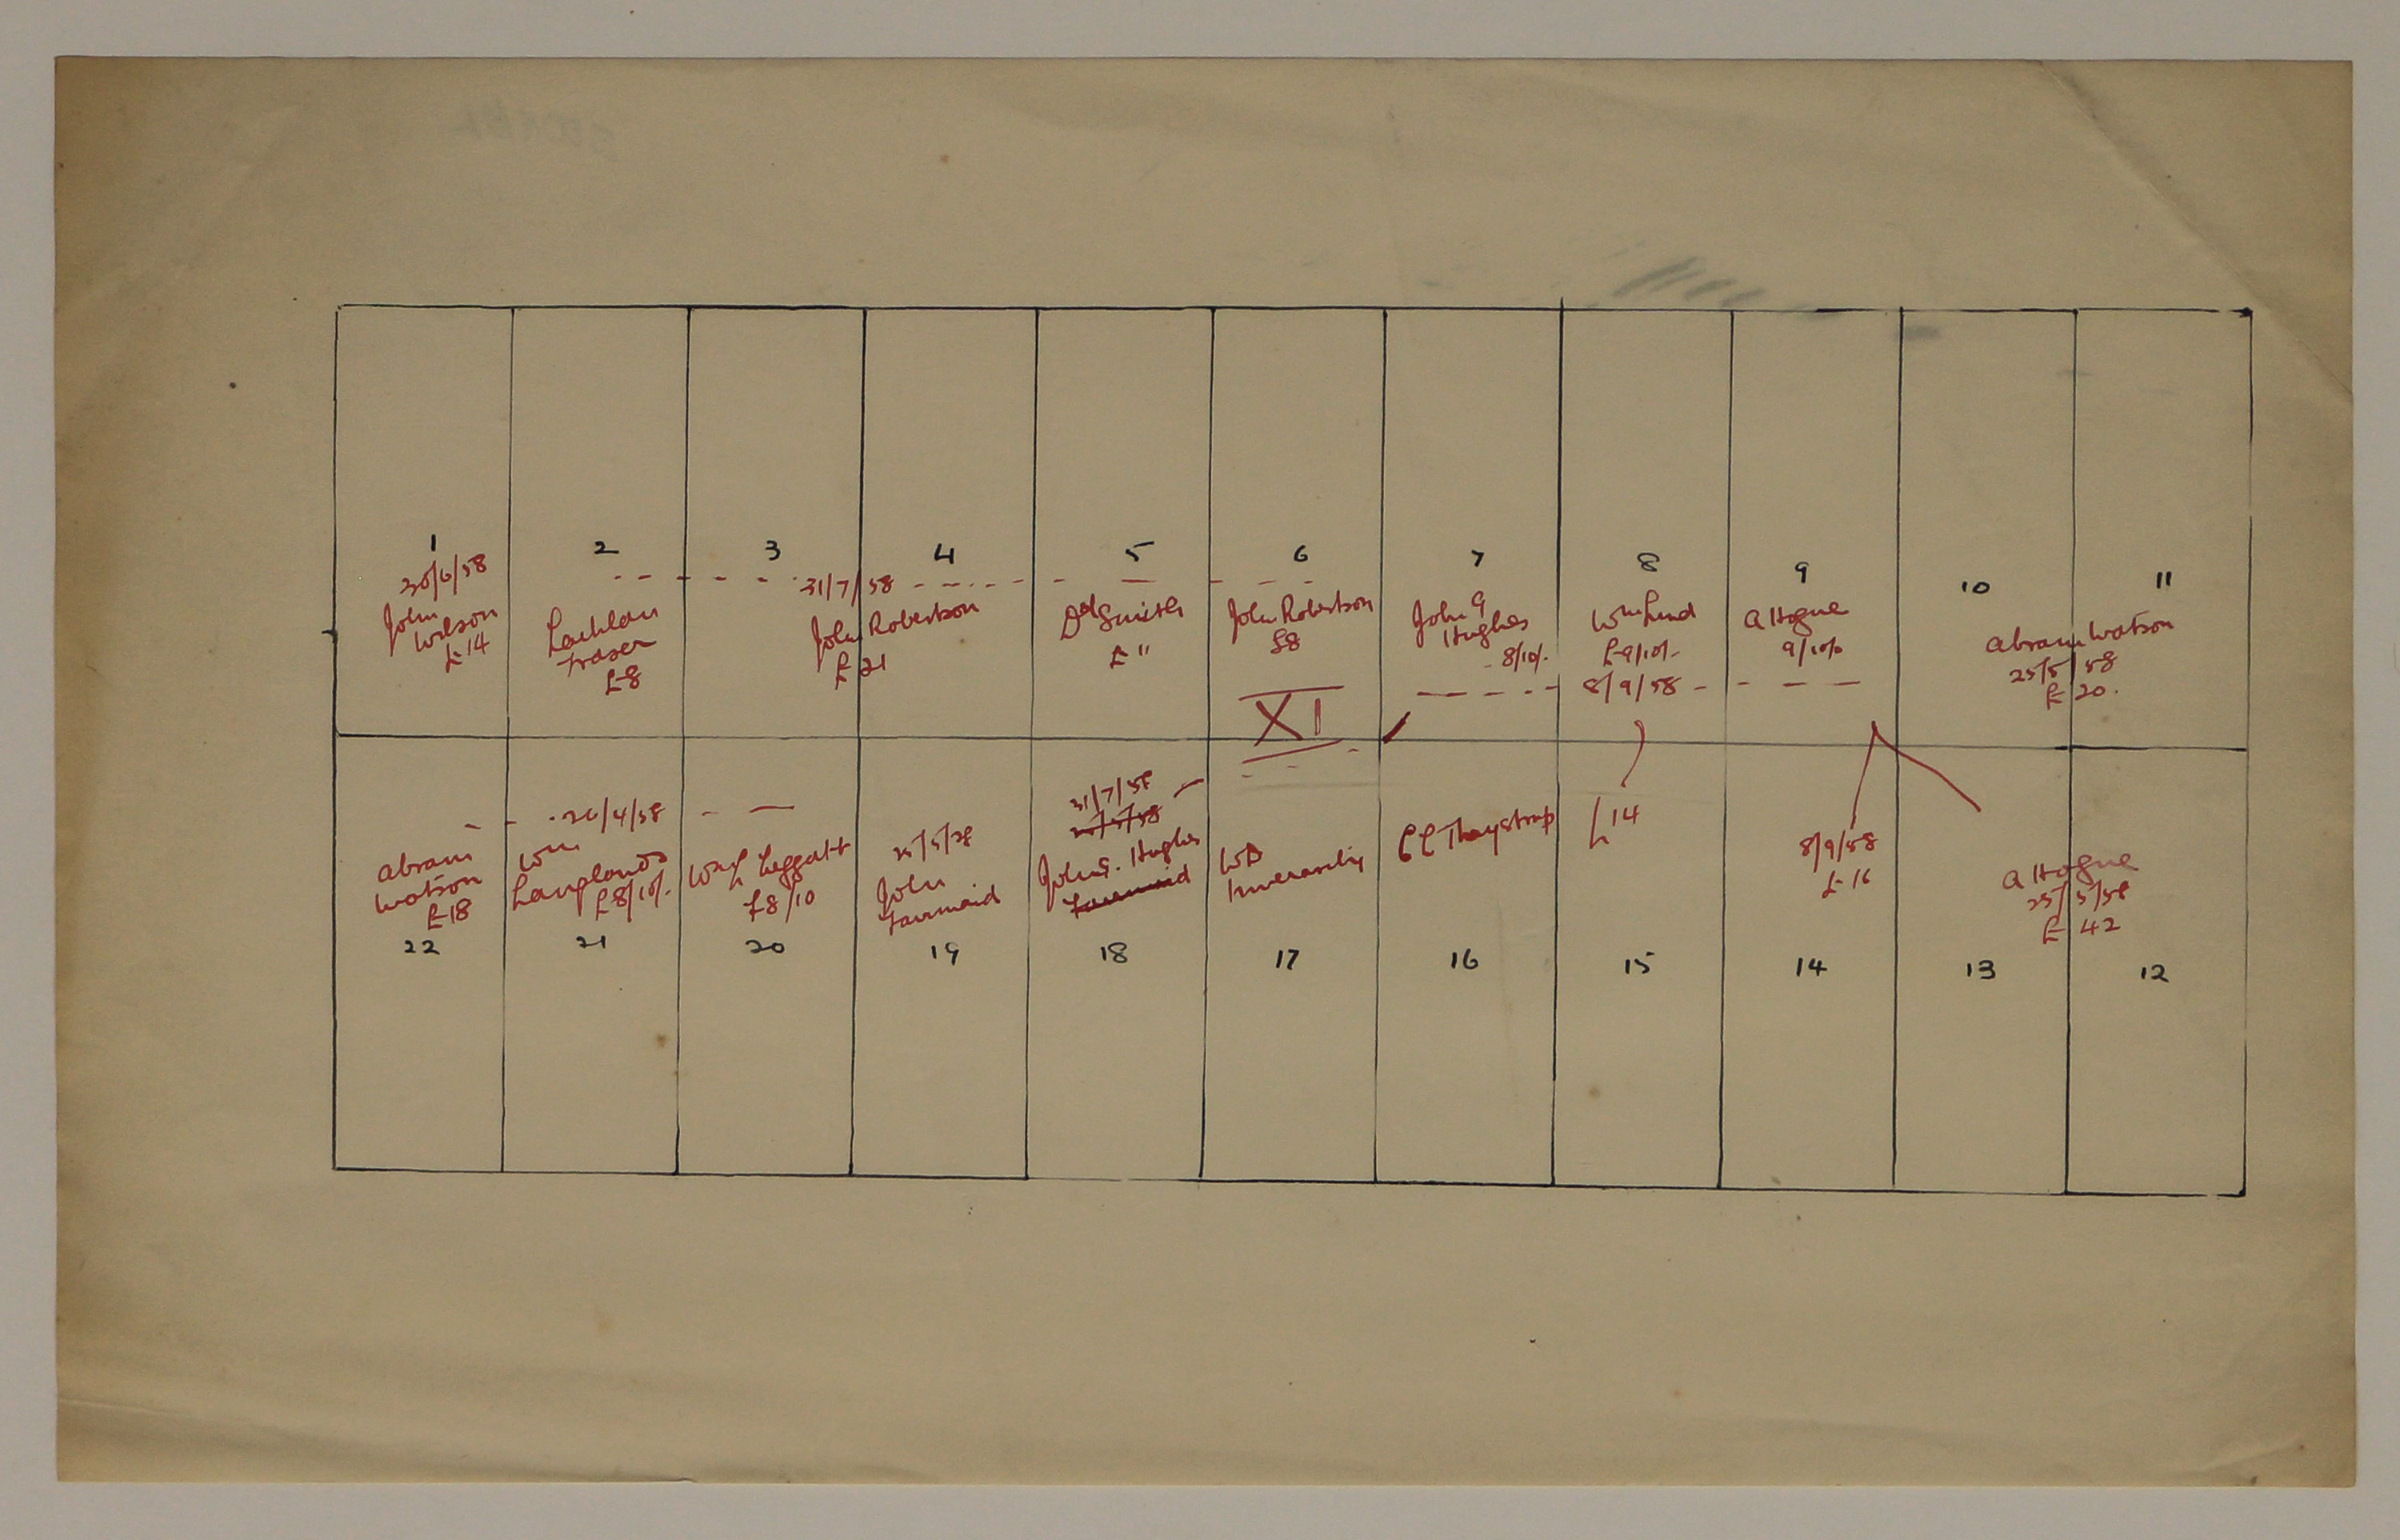 Allotments Invercargill Block XI including sale dates and prices in 1858.